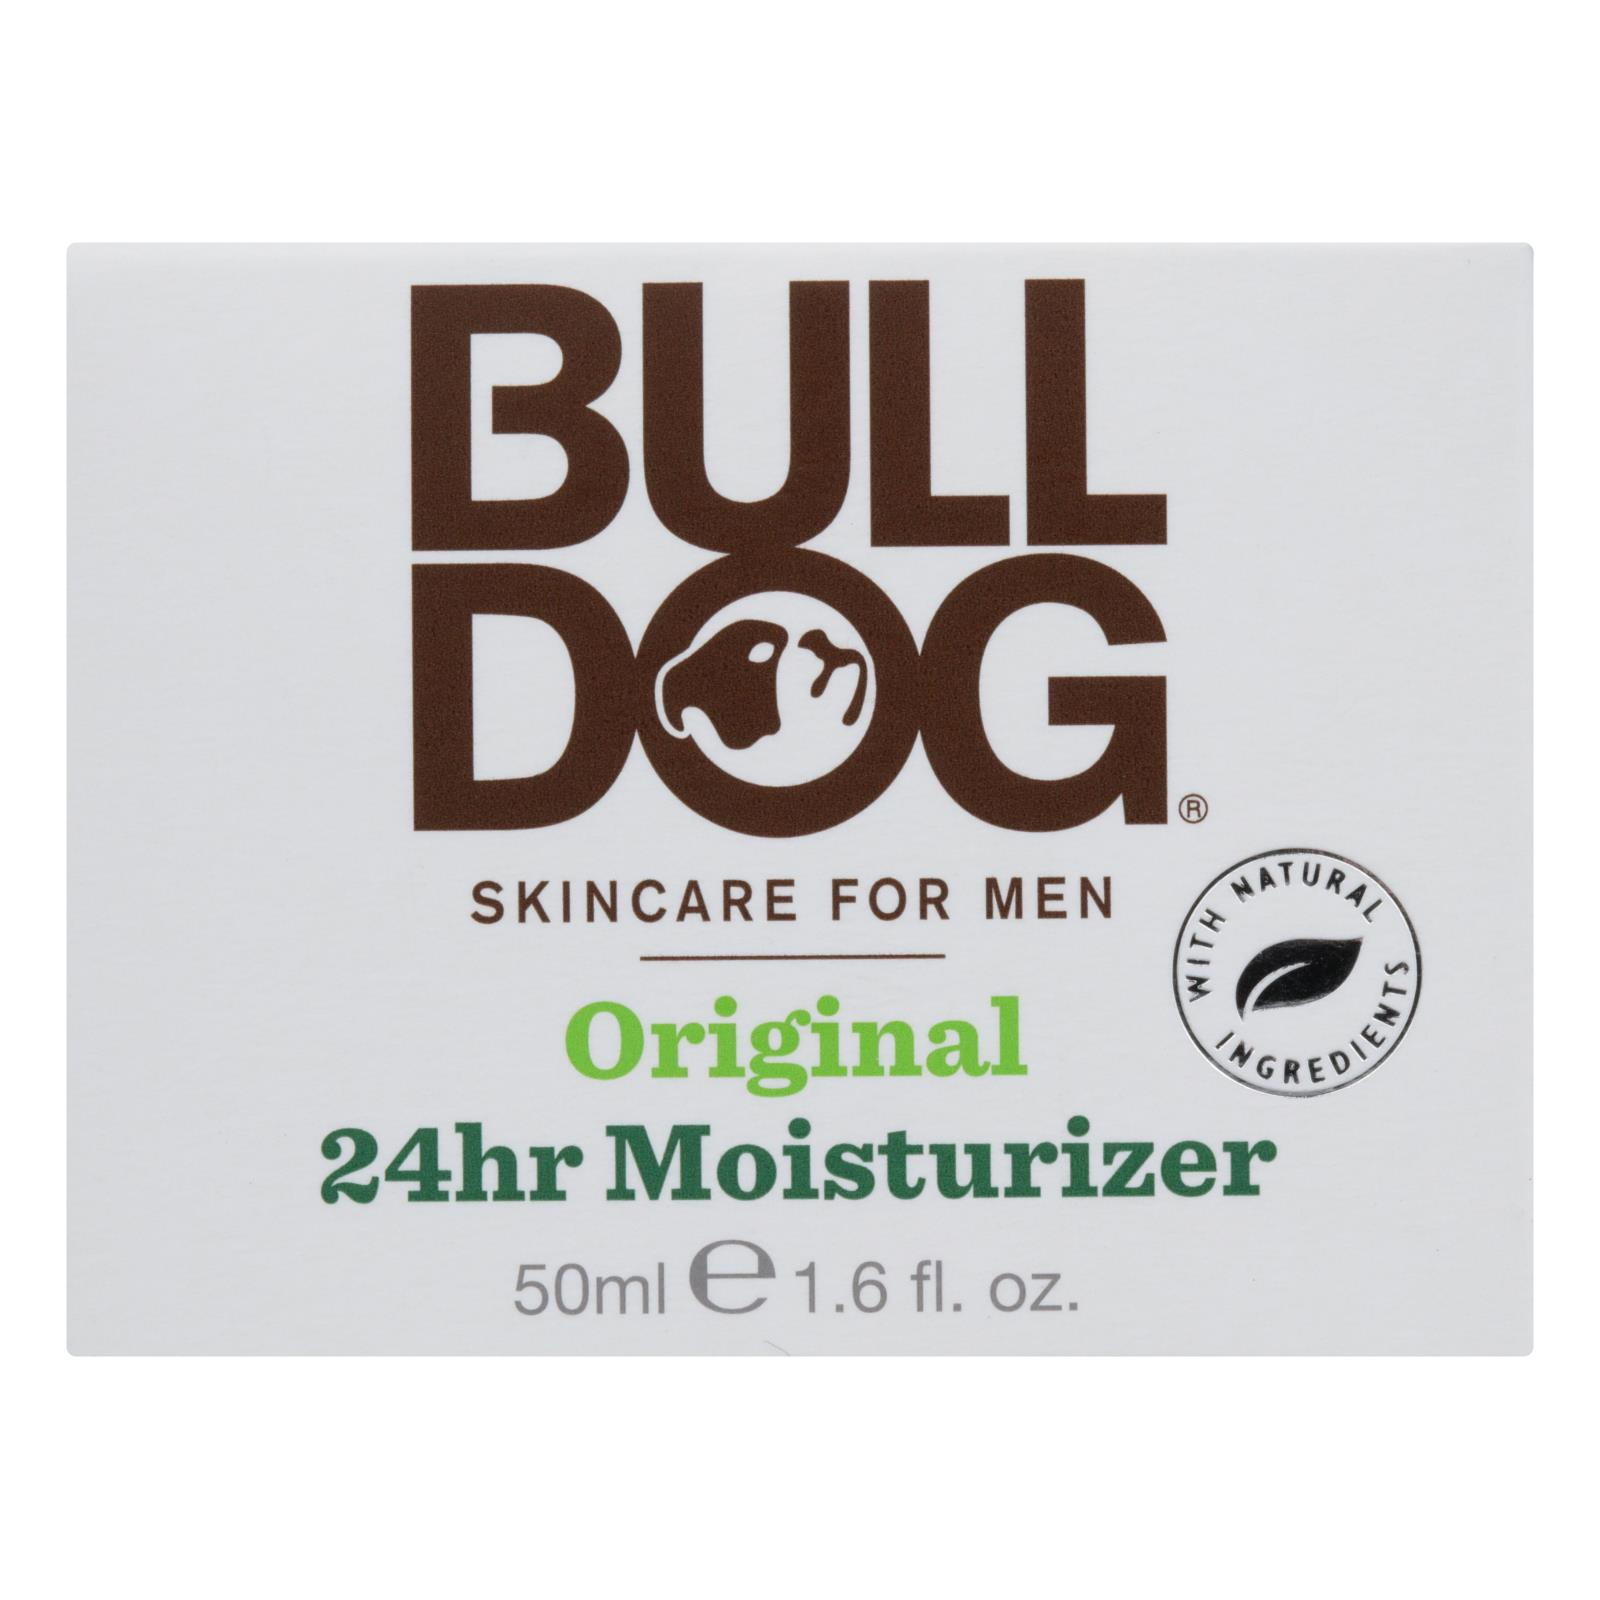 Bulldog Natural Skincare - Moist Original 24hr - 1 Each - 1.6 OZ